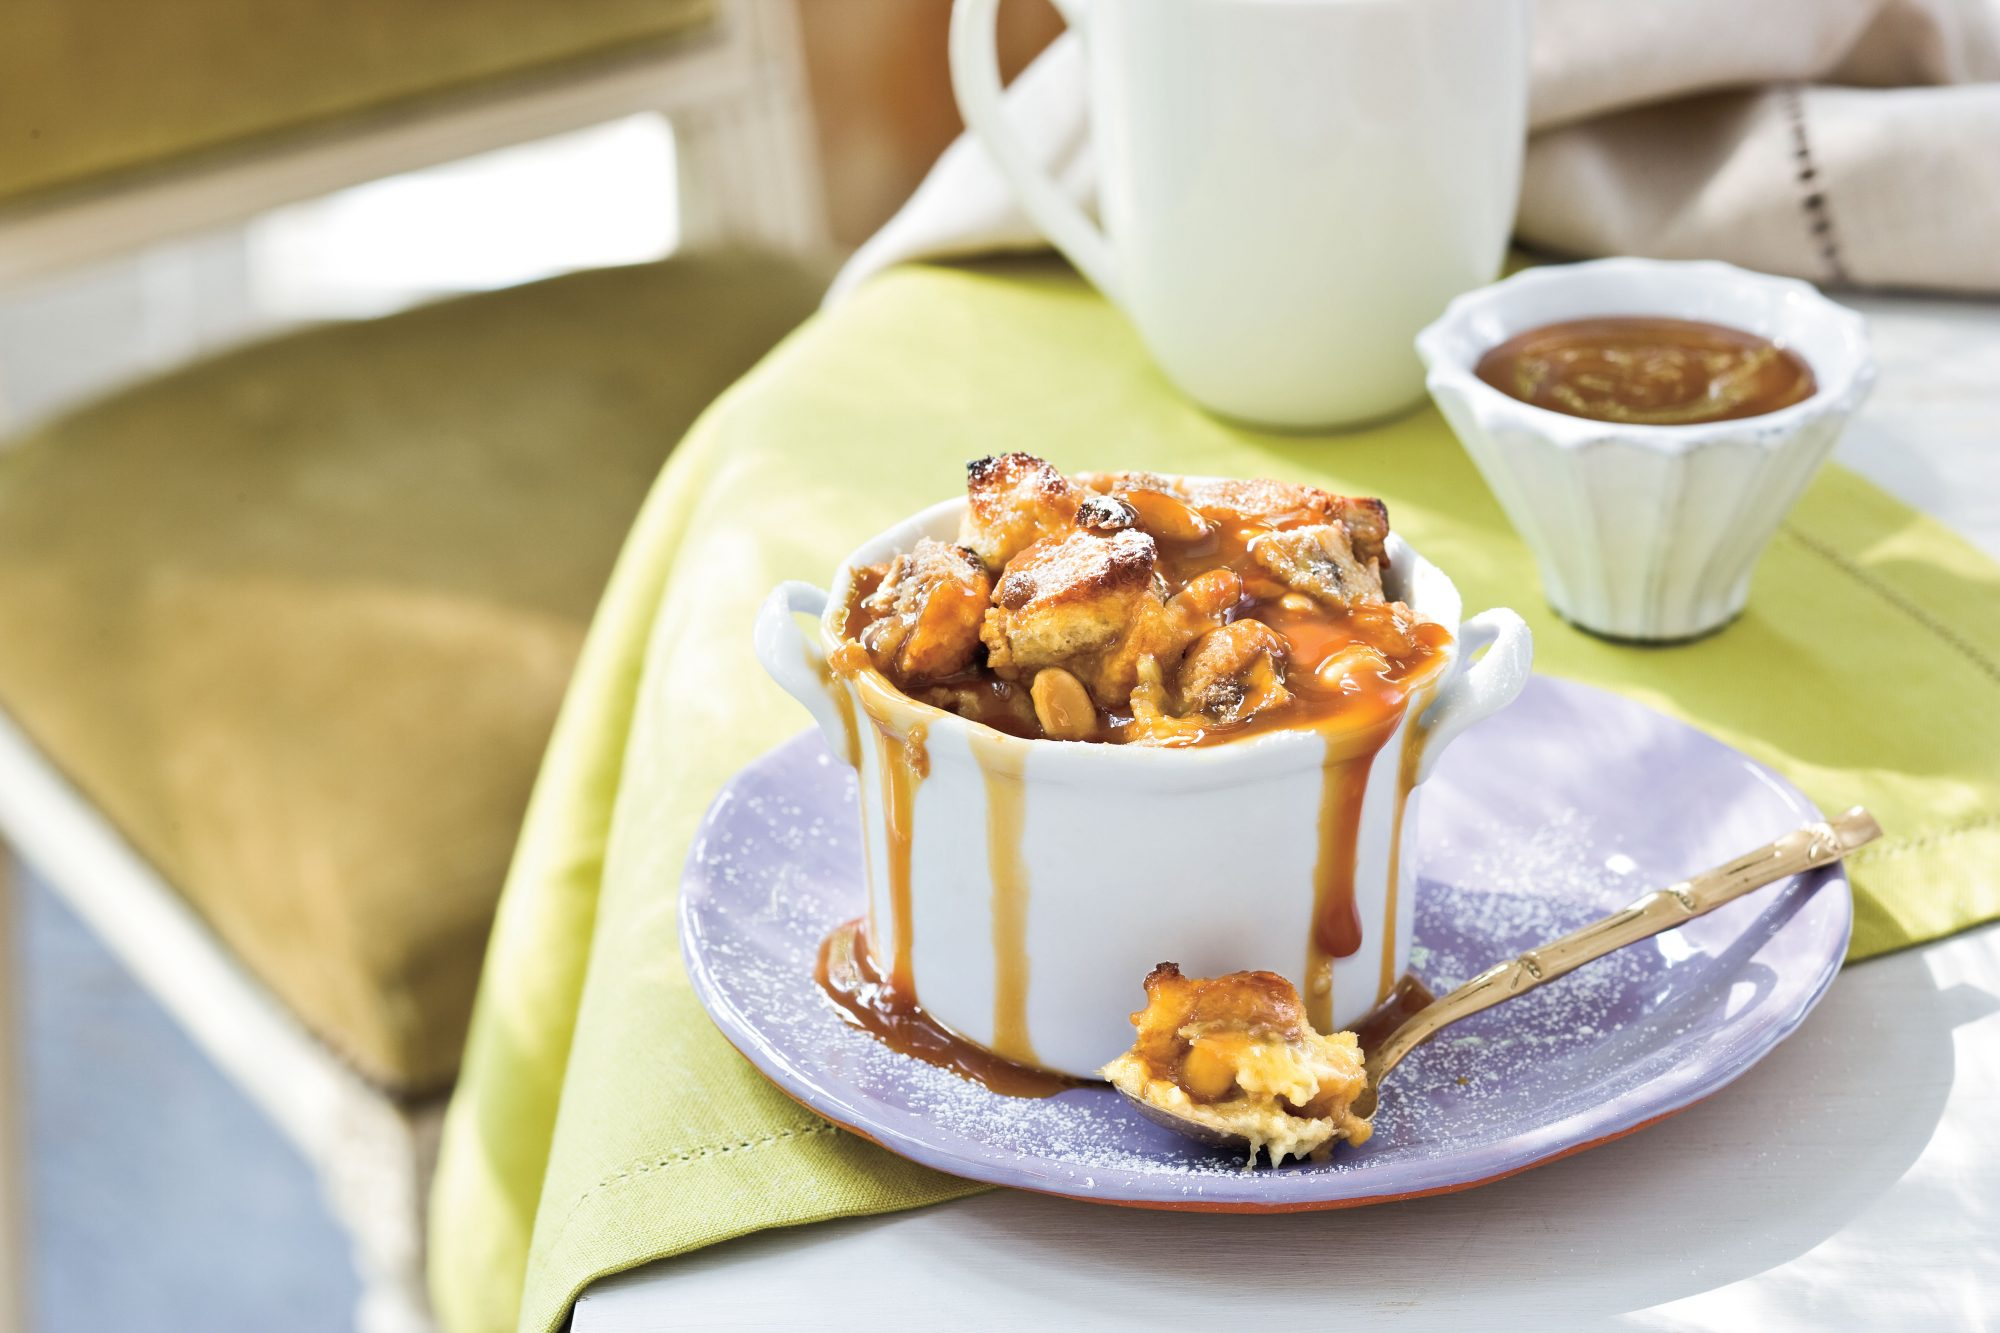 Peanut Butter-Banana Sandwich Bread Pudding with Dark Caramel Sauce